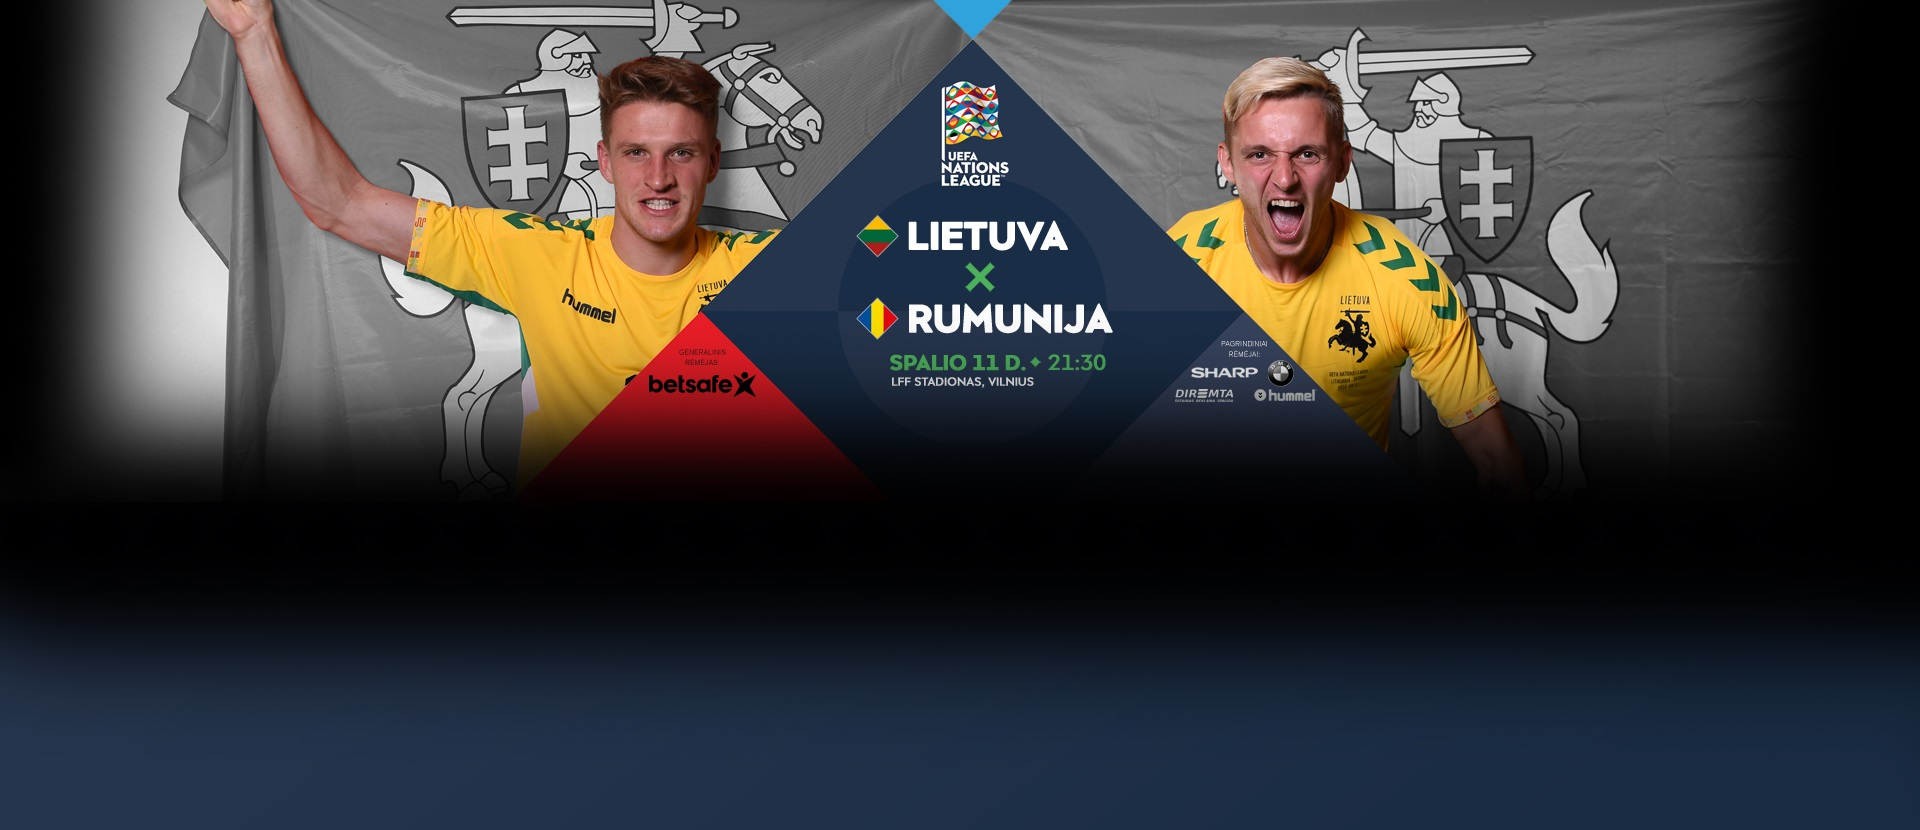 Nations League: Lithuania – Romania